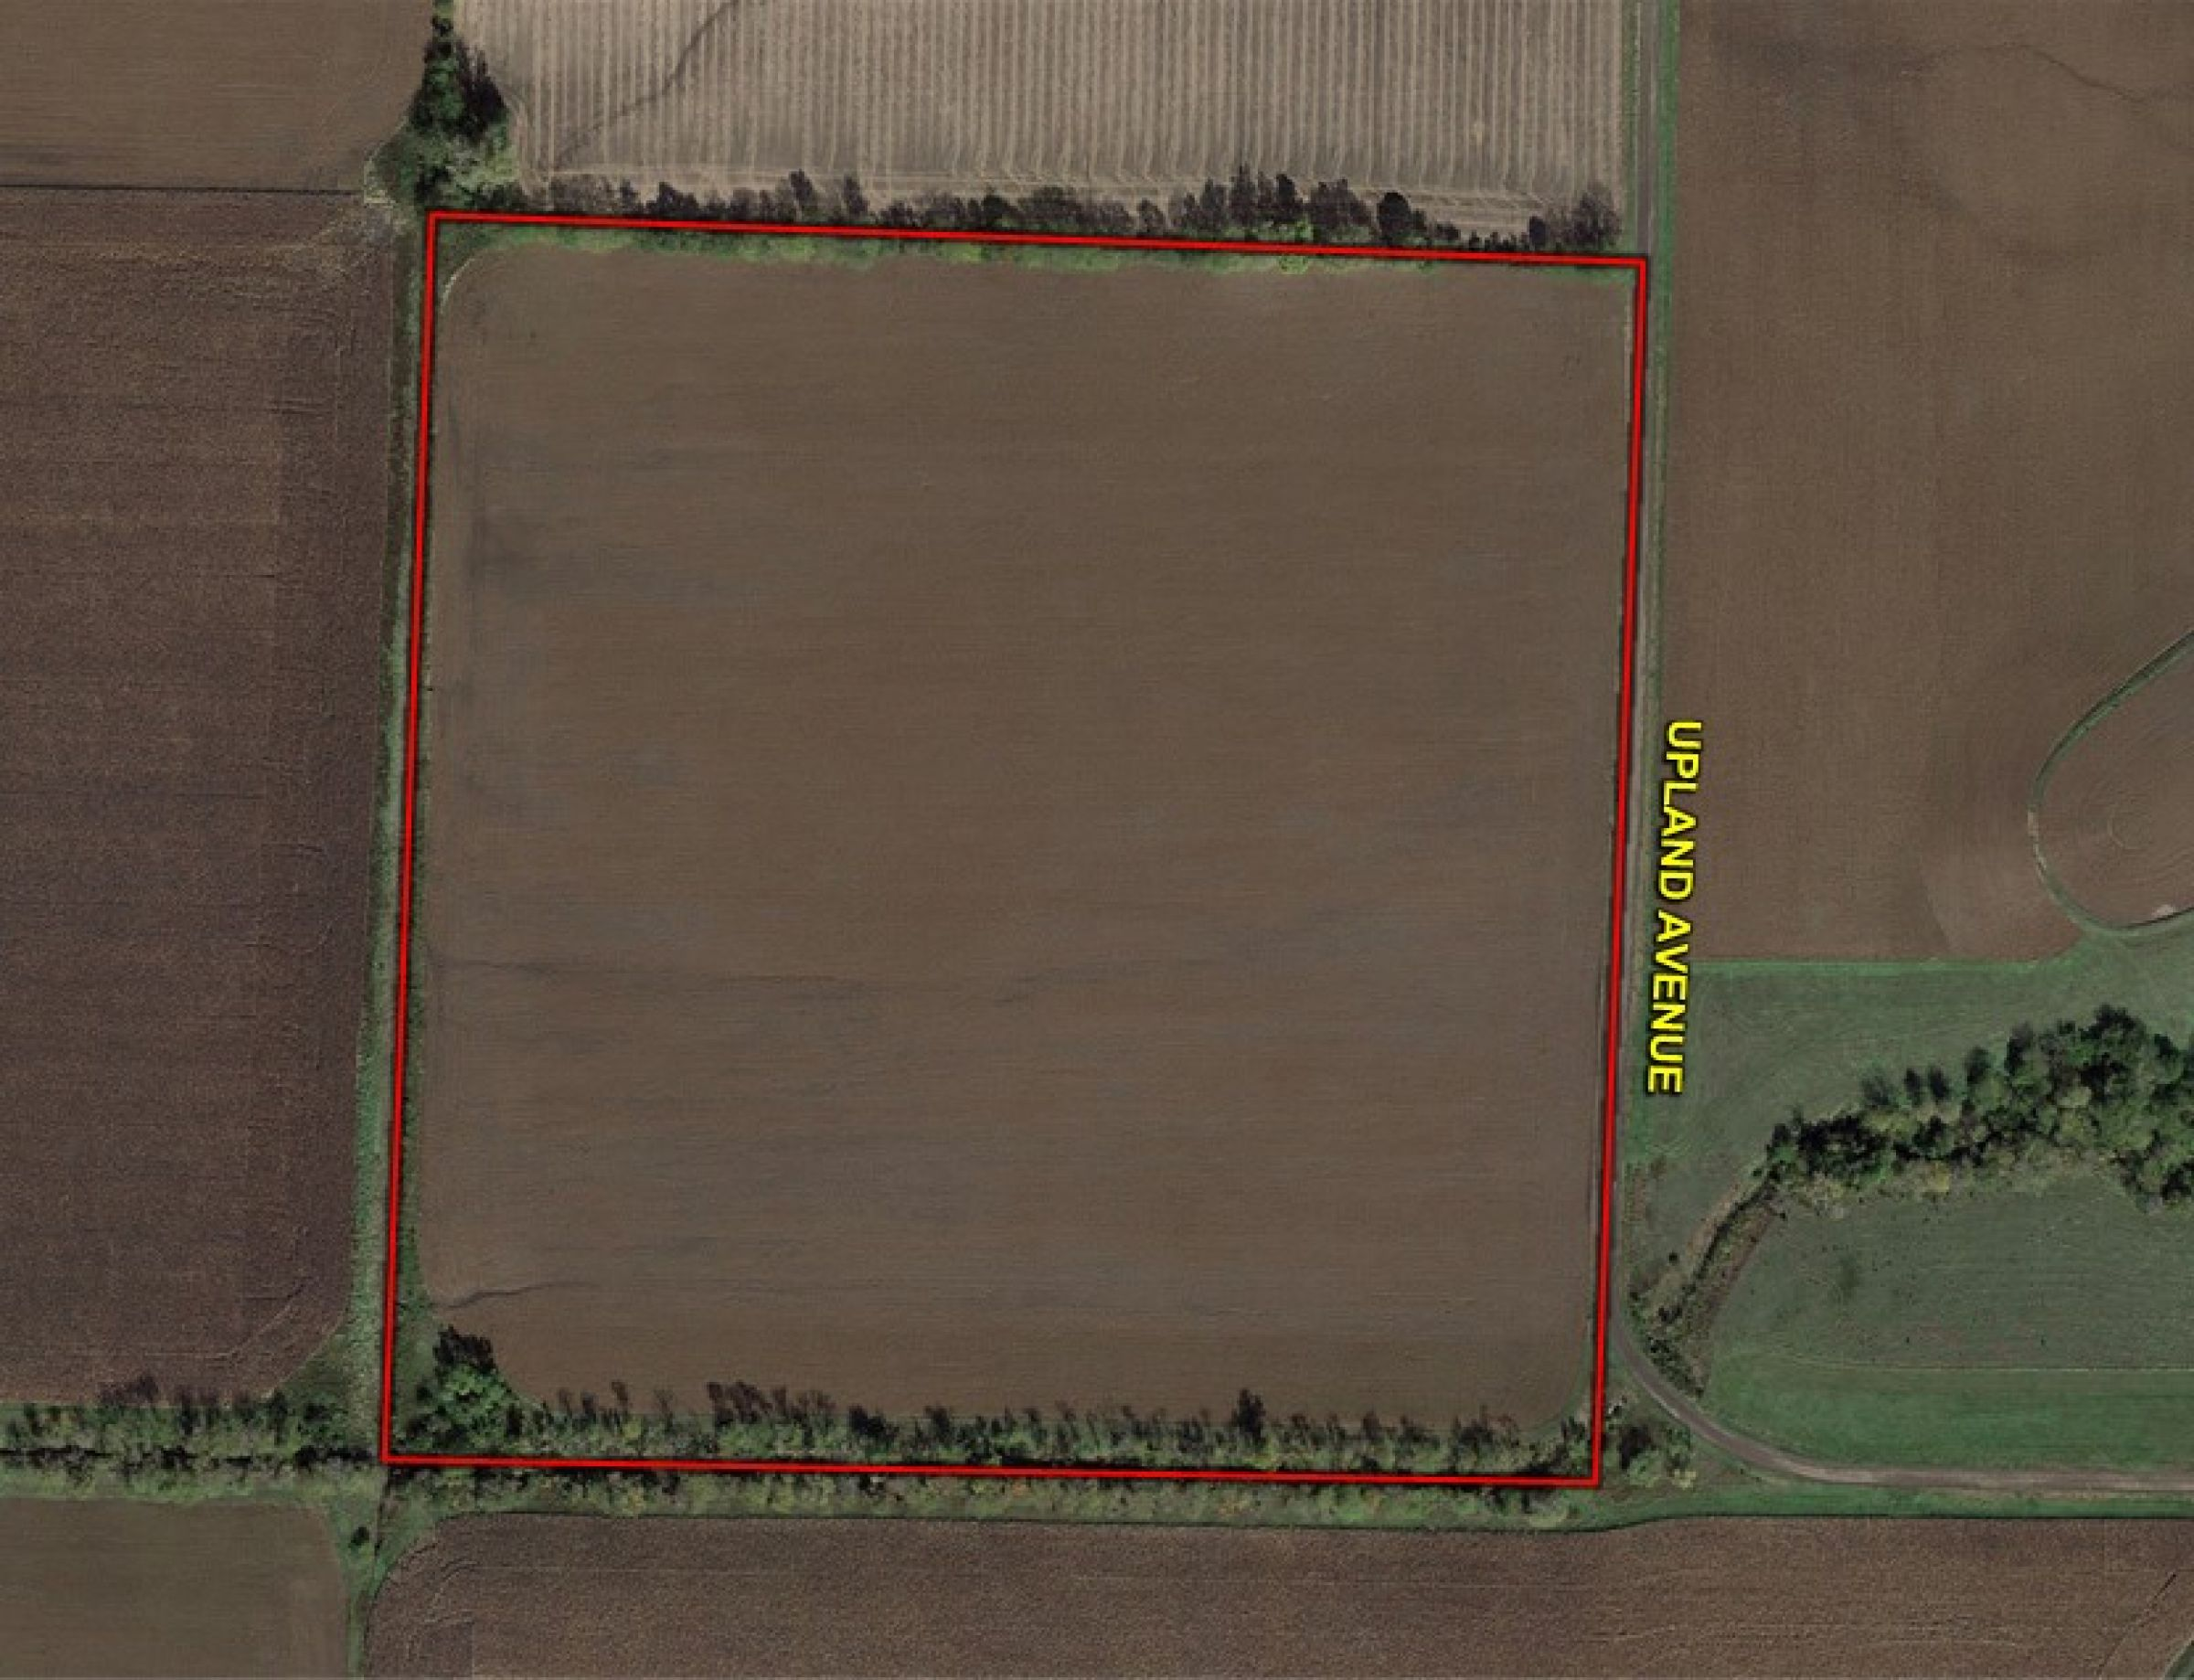 land-page-county-iowa-40-acres-listing-number-14981-0-2020-04-28-184035.jpg